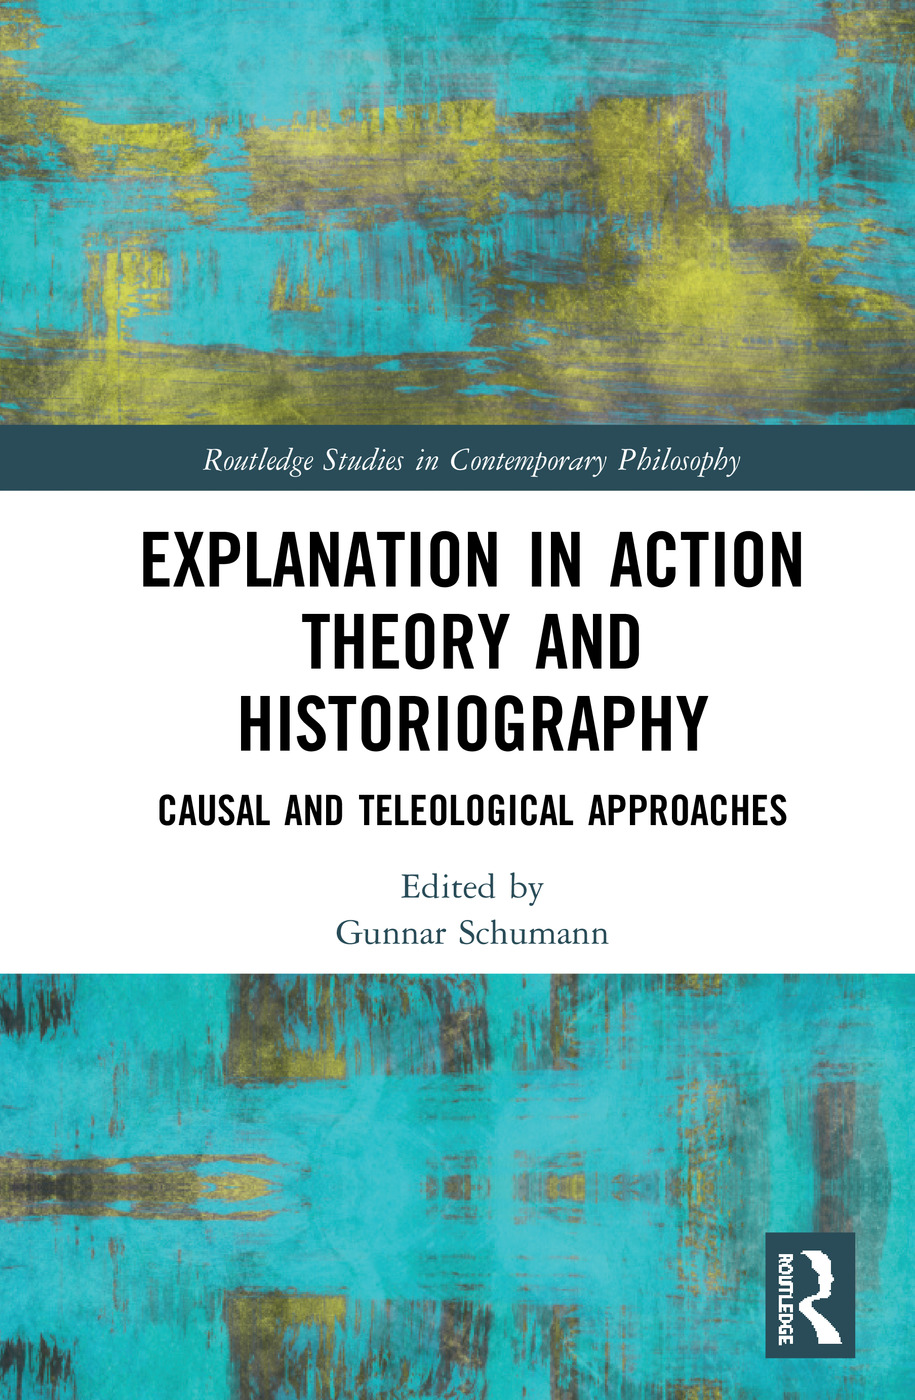 Explanation in Action Theory and Historiography: Causal and Teleological Approaches book cover